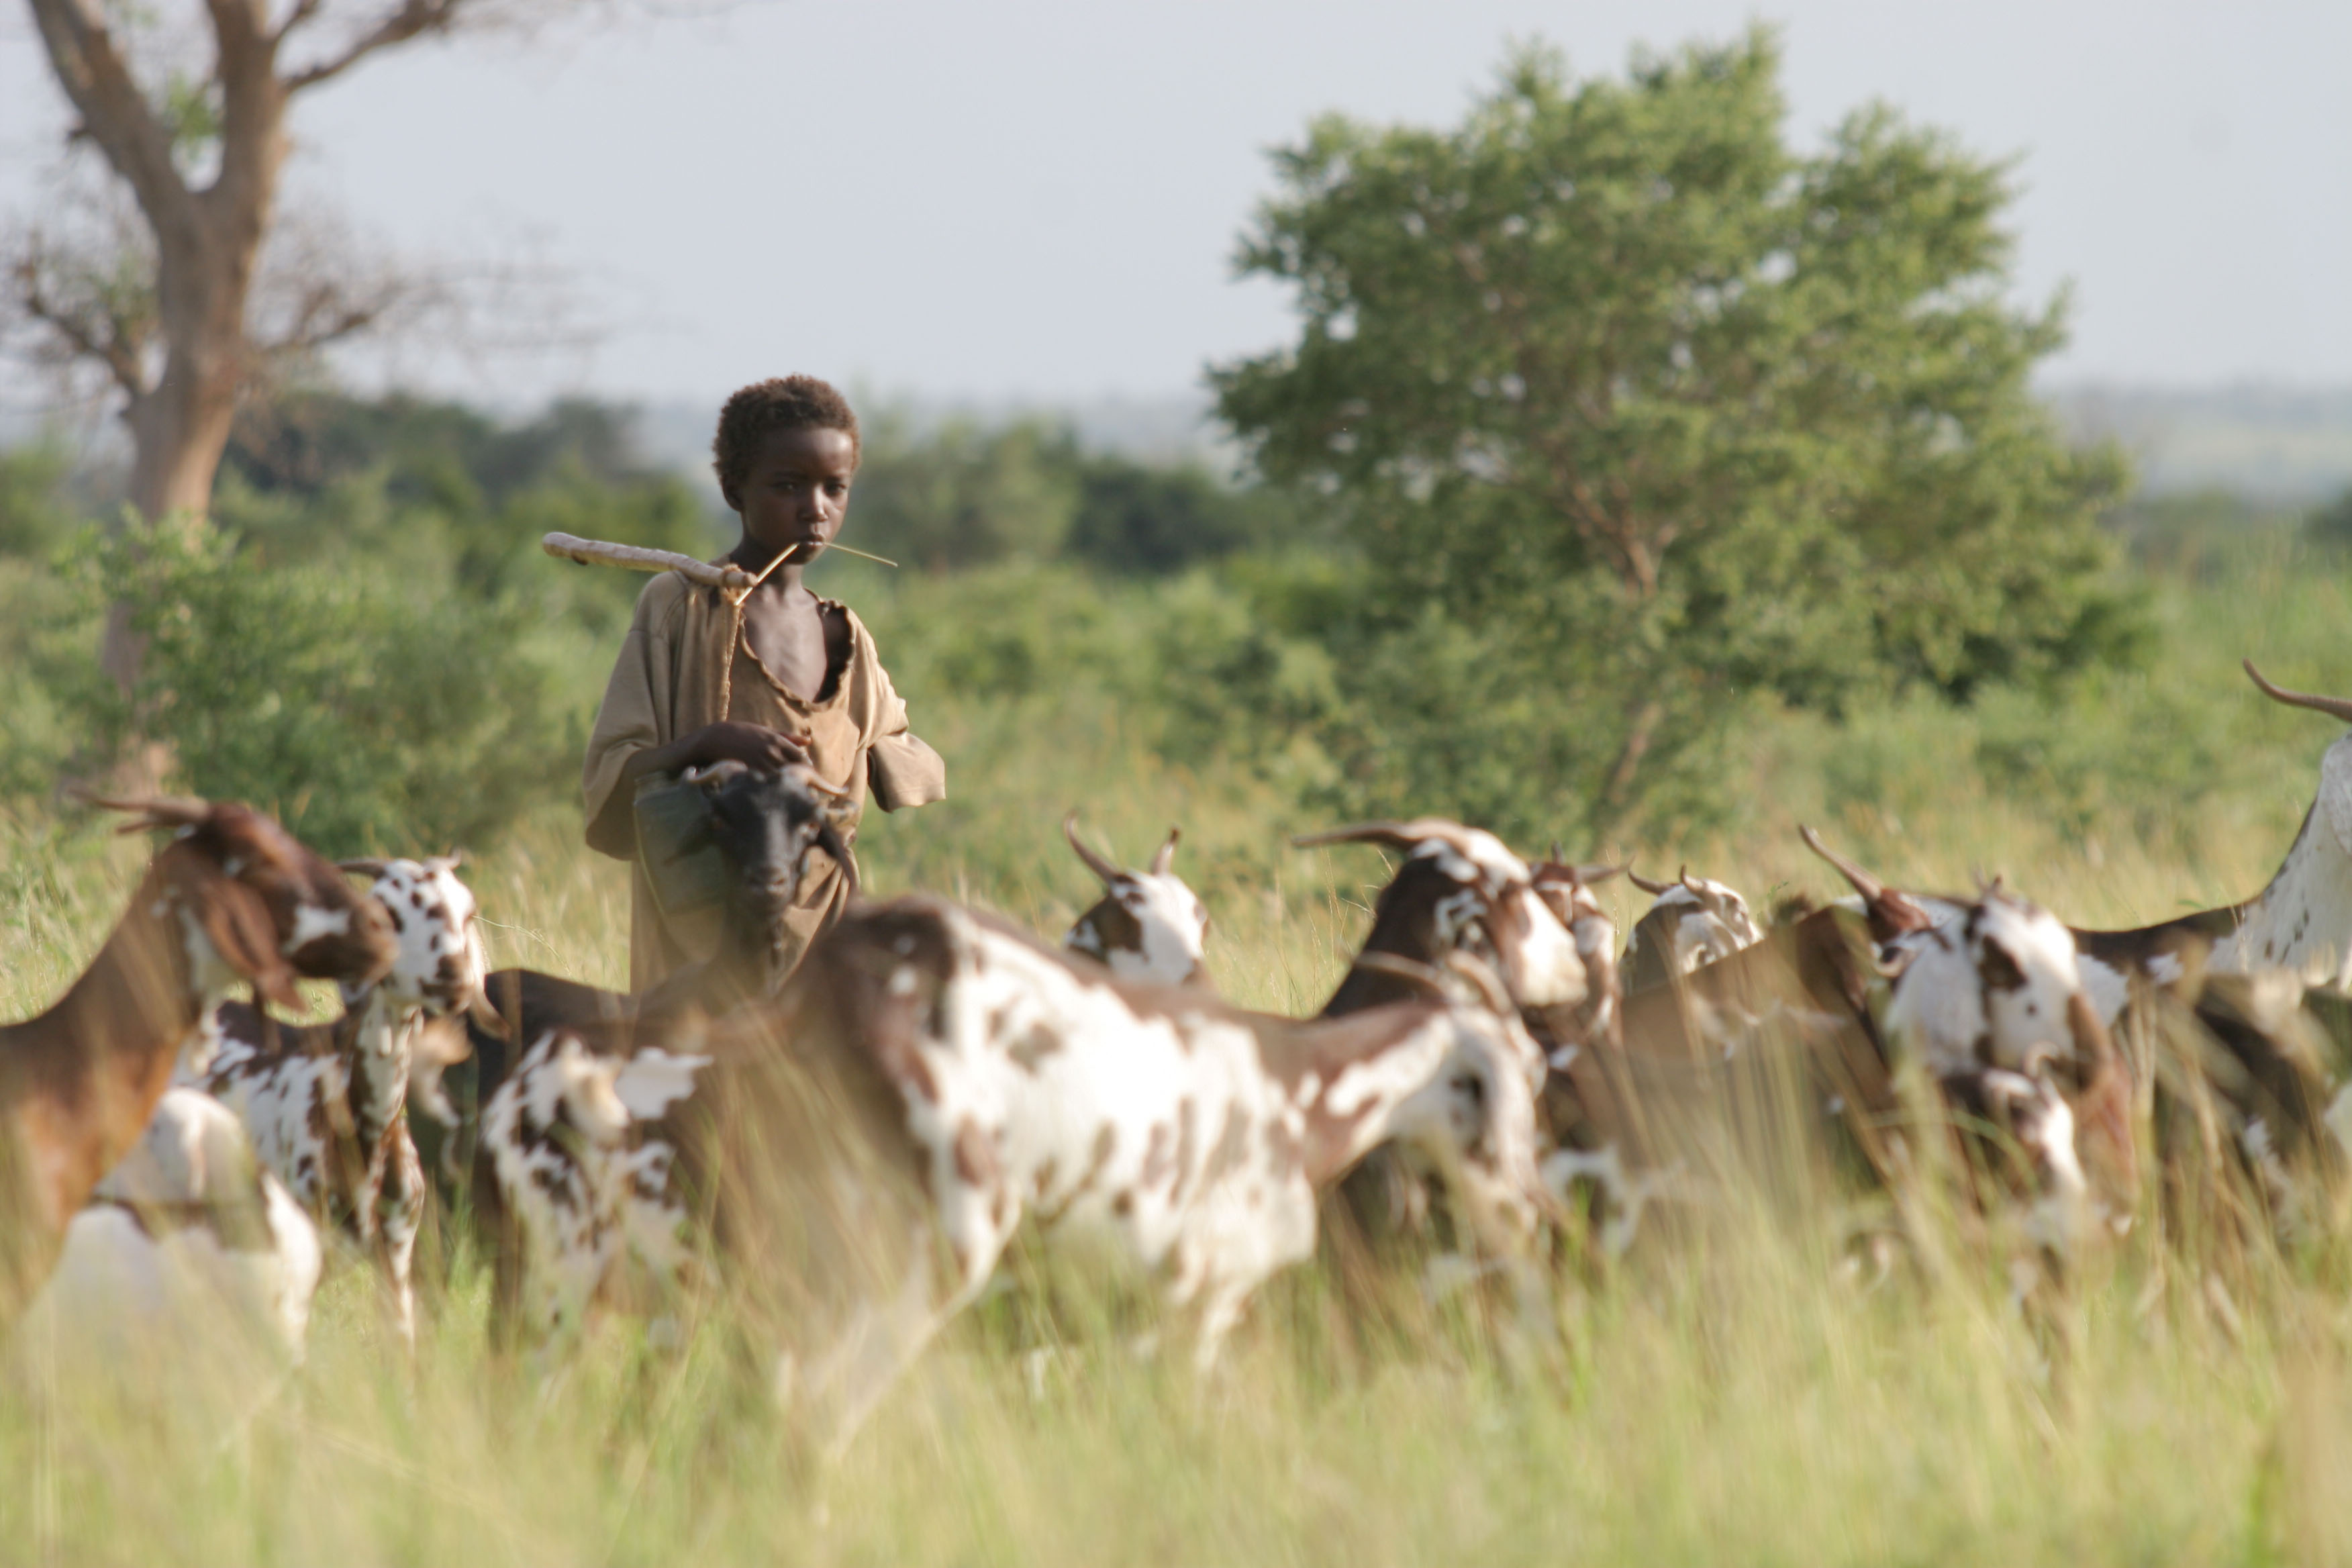 Young Fulani boy standing among goat herd.